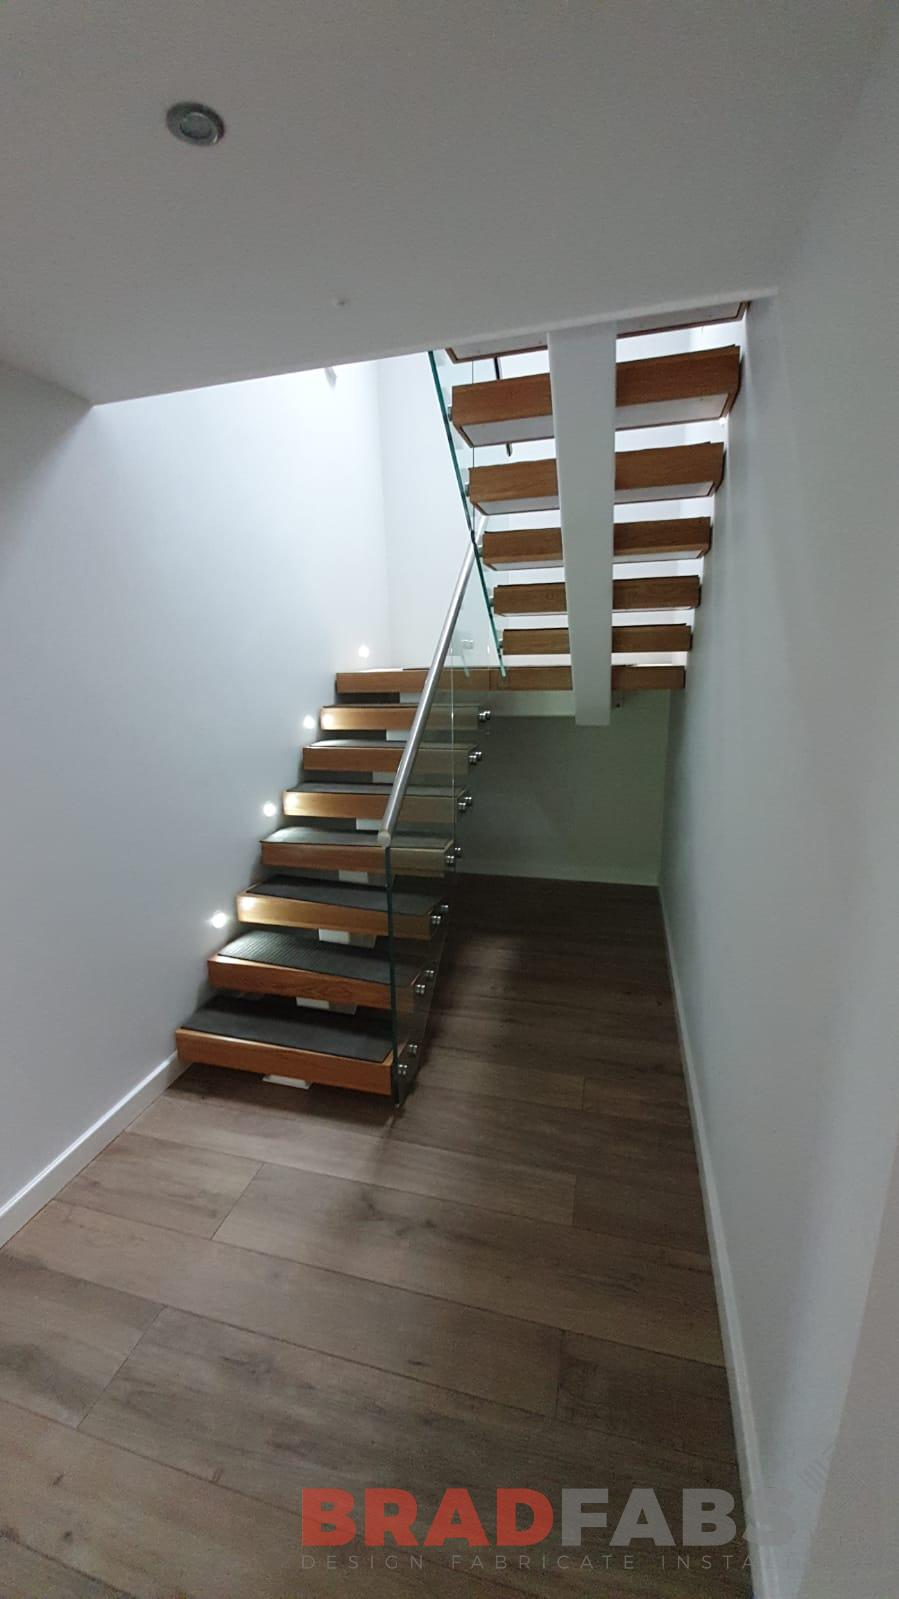 Straight staircase with 48.3 dia stainless steel handrail and infinity glass, complete with oak treads